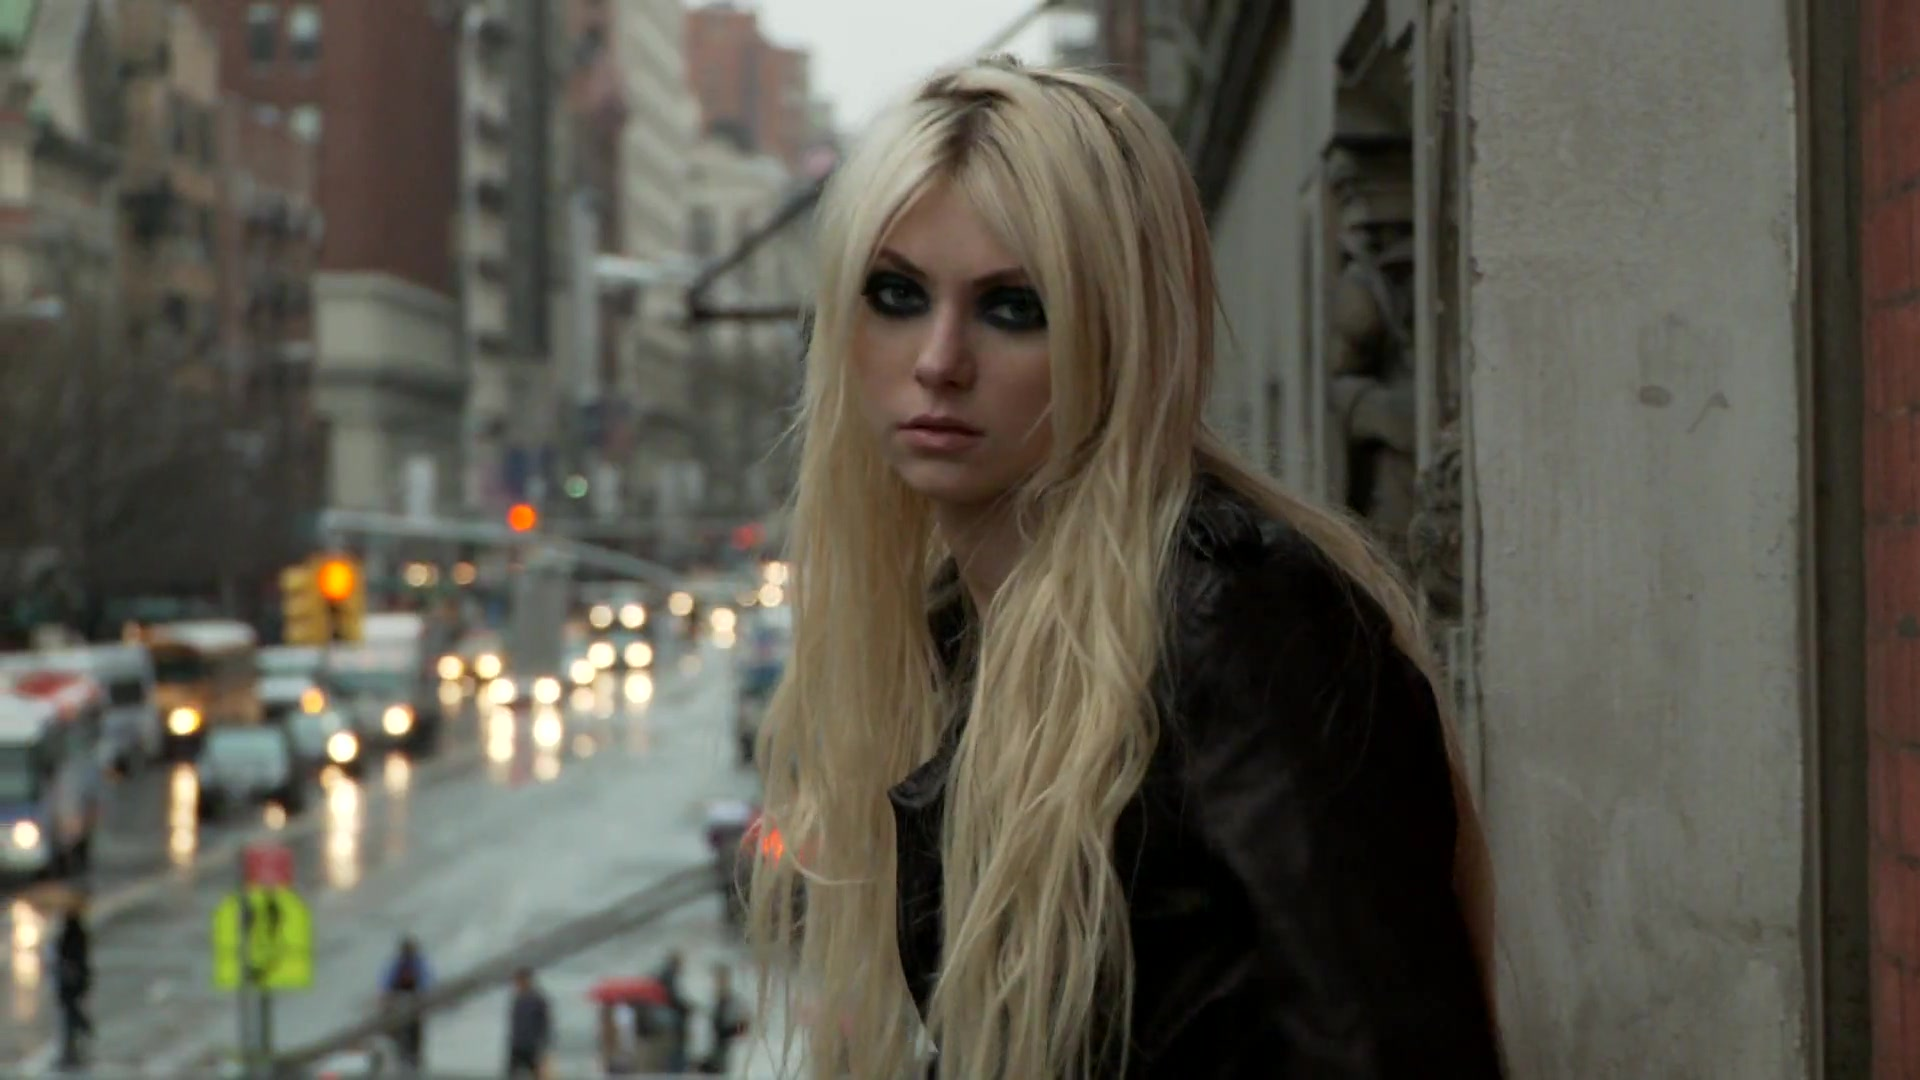 Music Festival Girl Wallpaper Taylor Momsen Teen Vogue Photoshoot 2010 14 Gotceleb